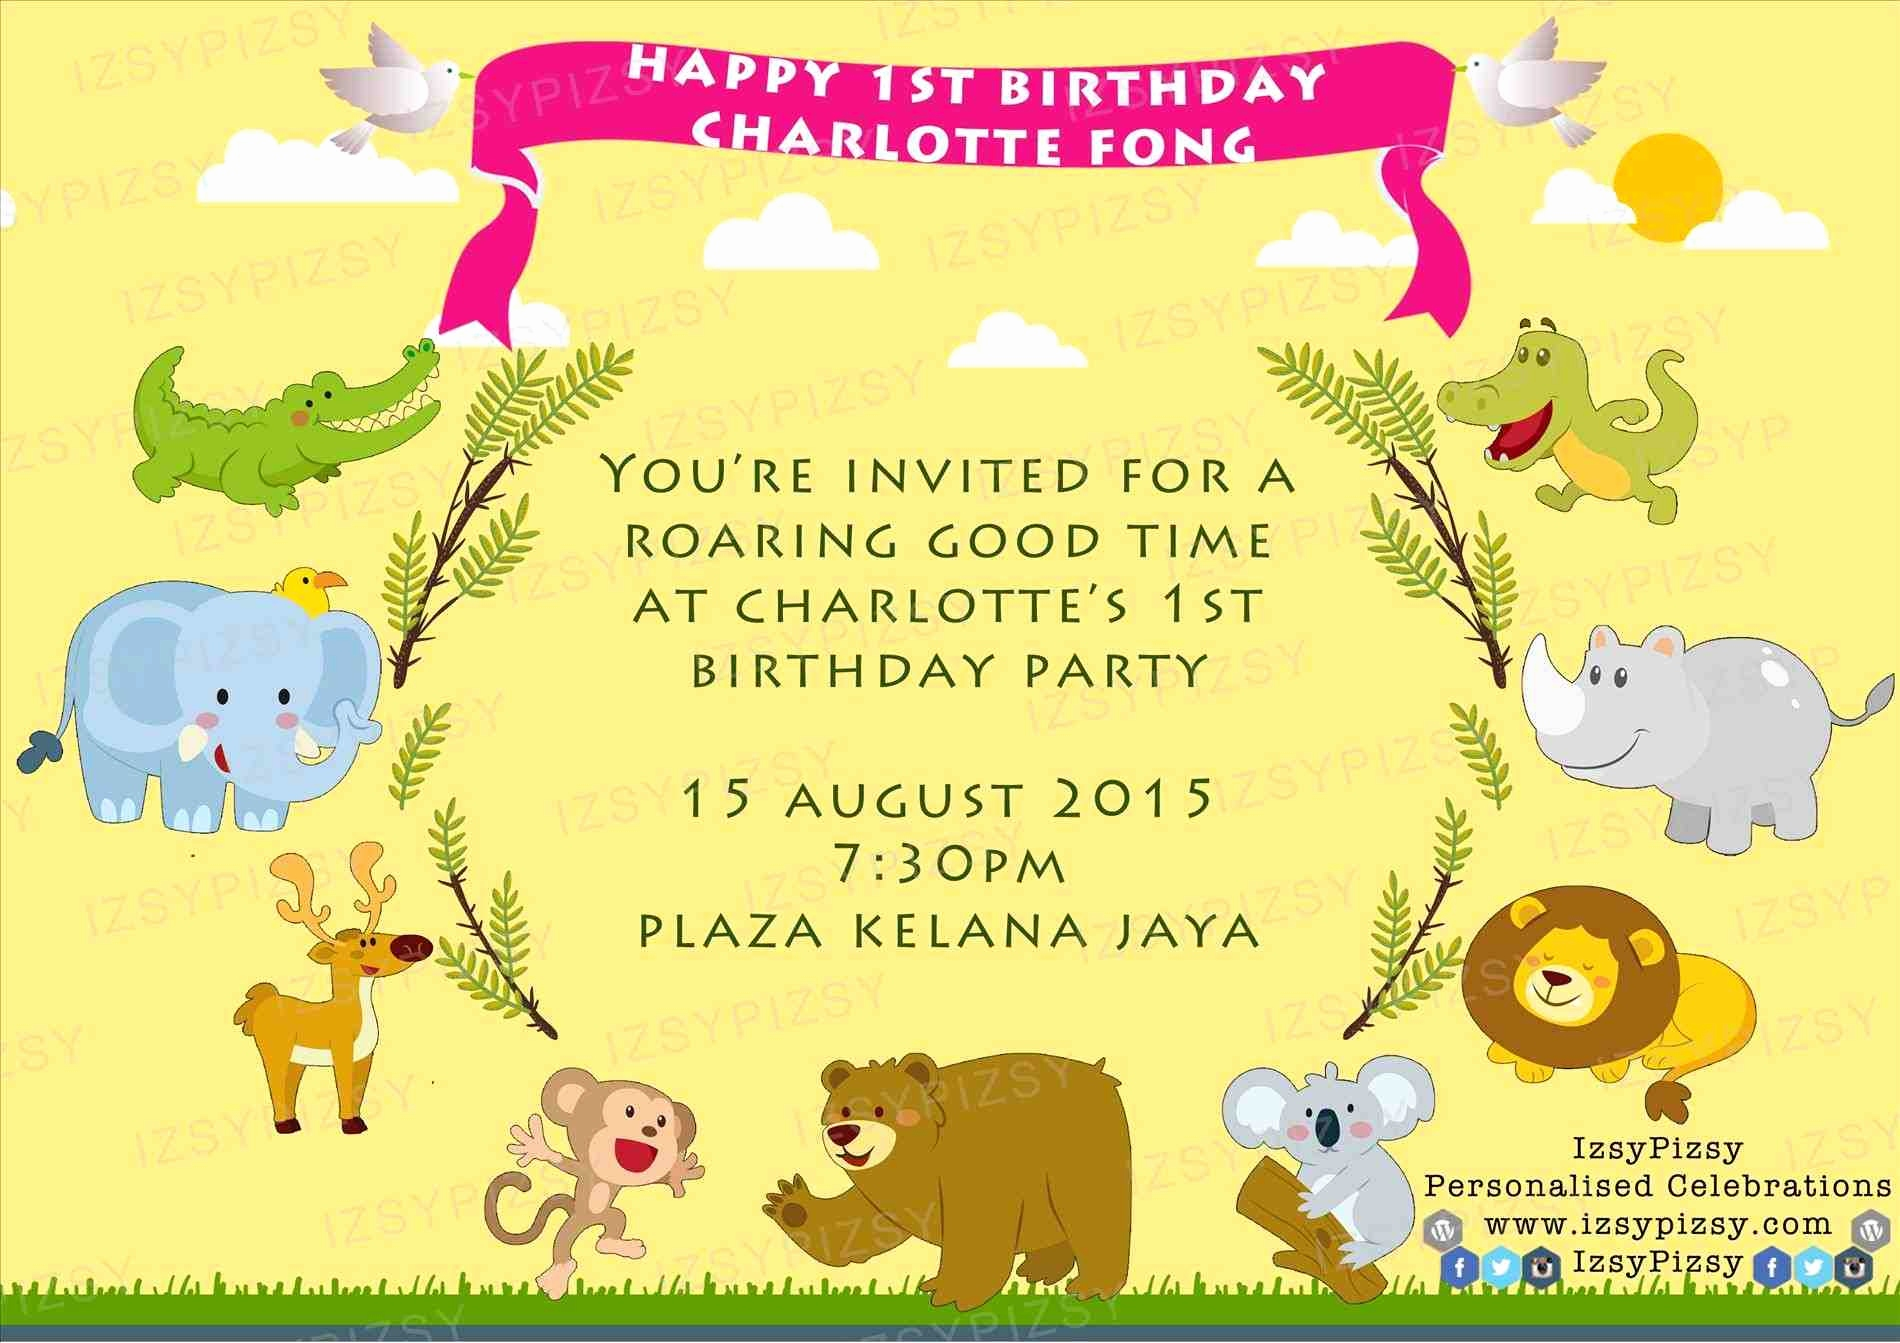 jungle theme birthday invitation card ; jungle-theme-birthday-invitation-card-best-of-cards-free-with-template-simple-wordings-for-template-jungle-of-jungle-theme-birthday-invitation-card